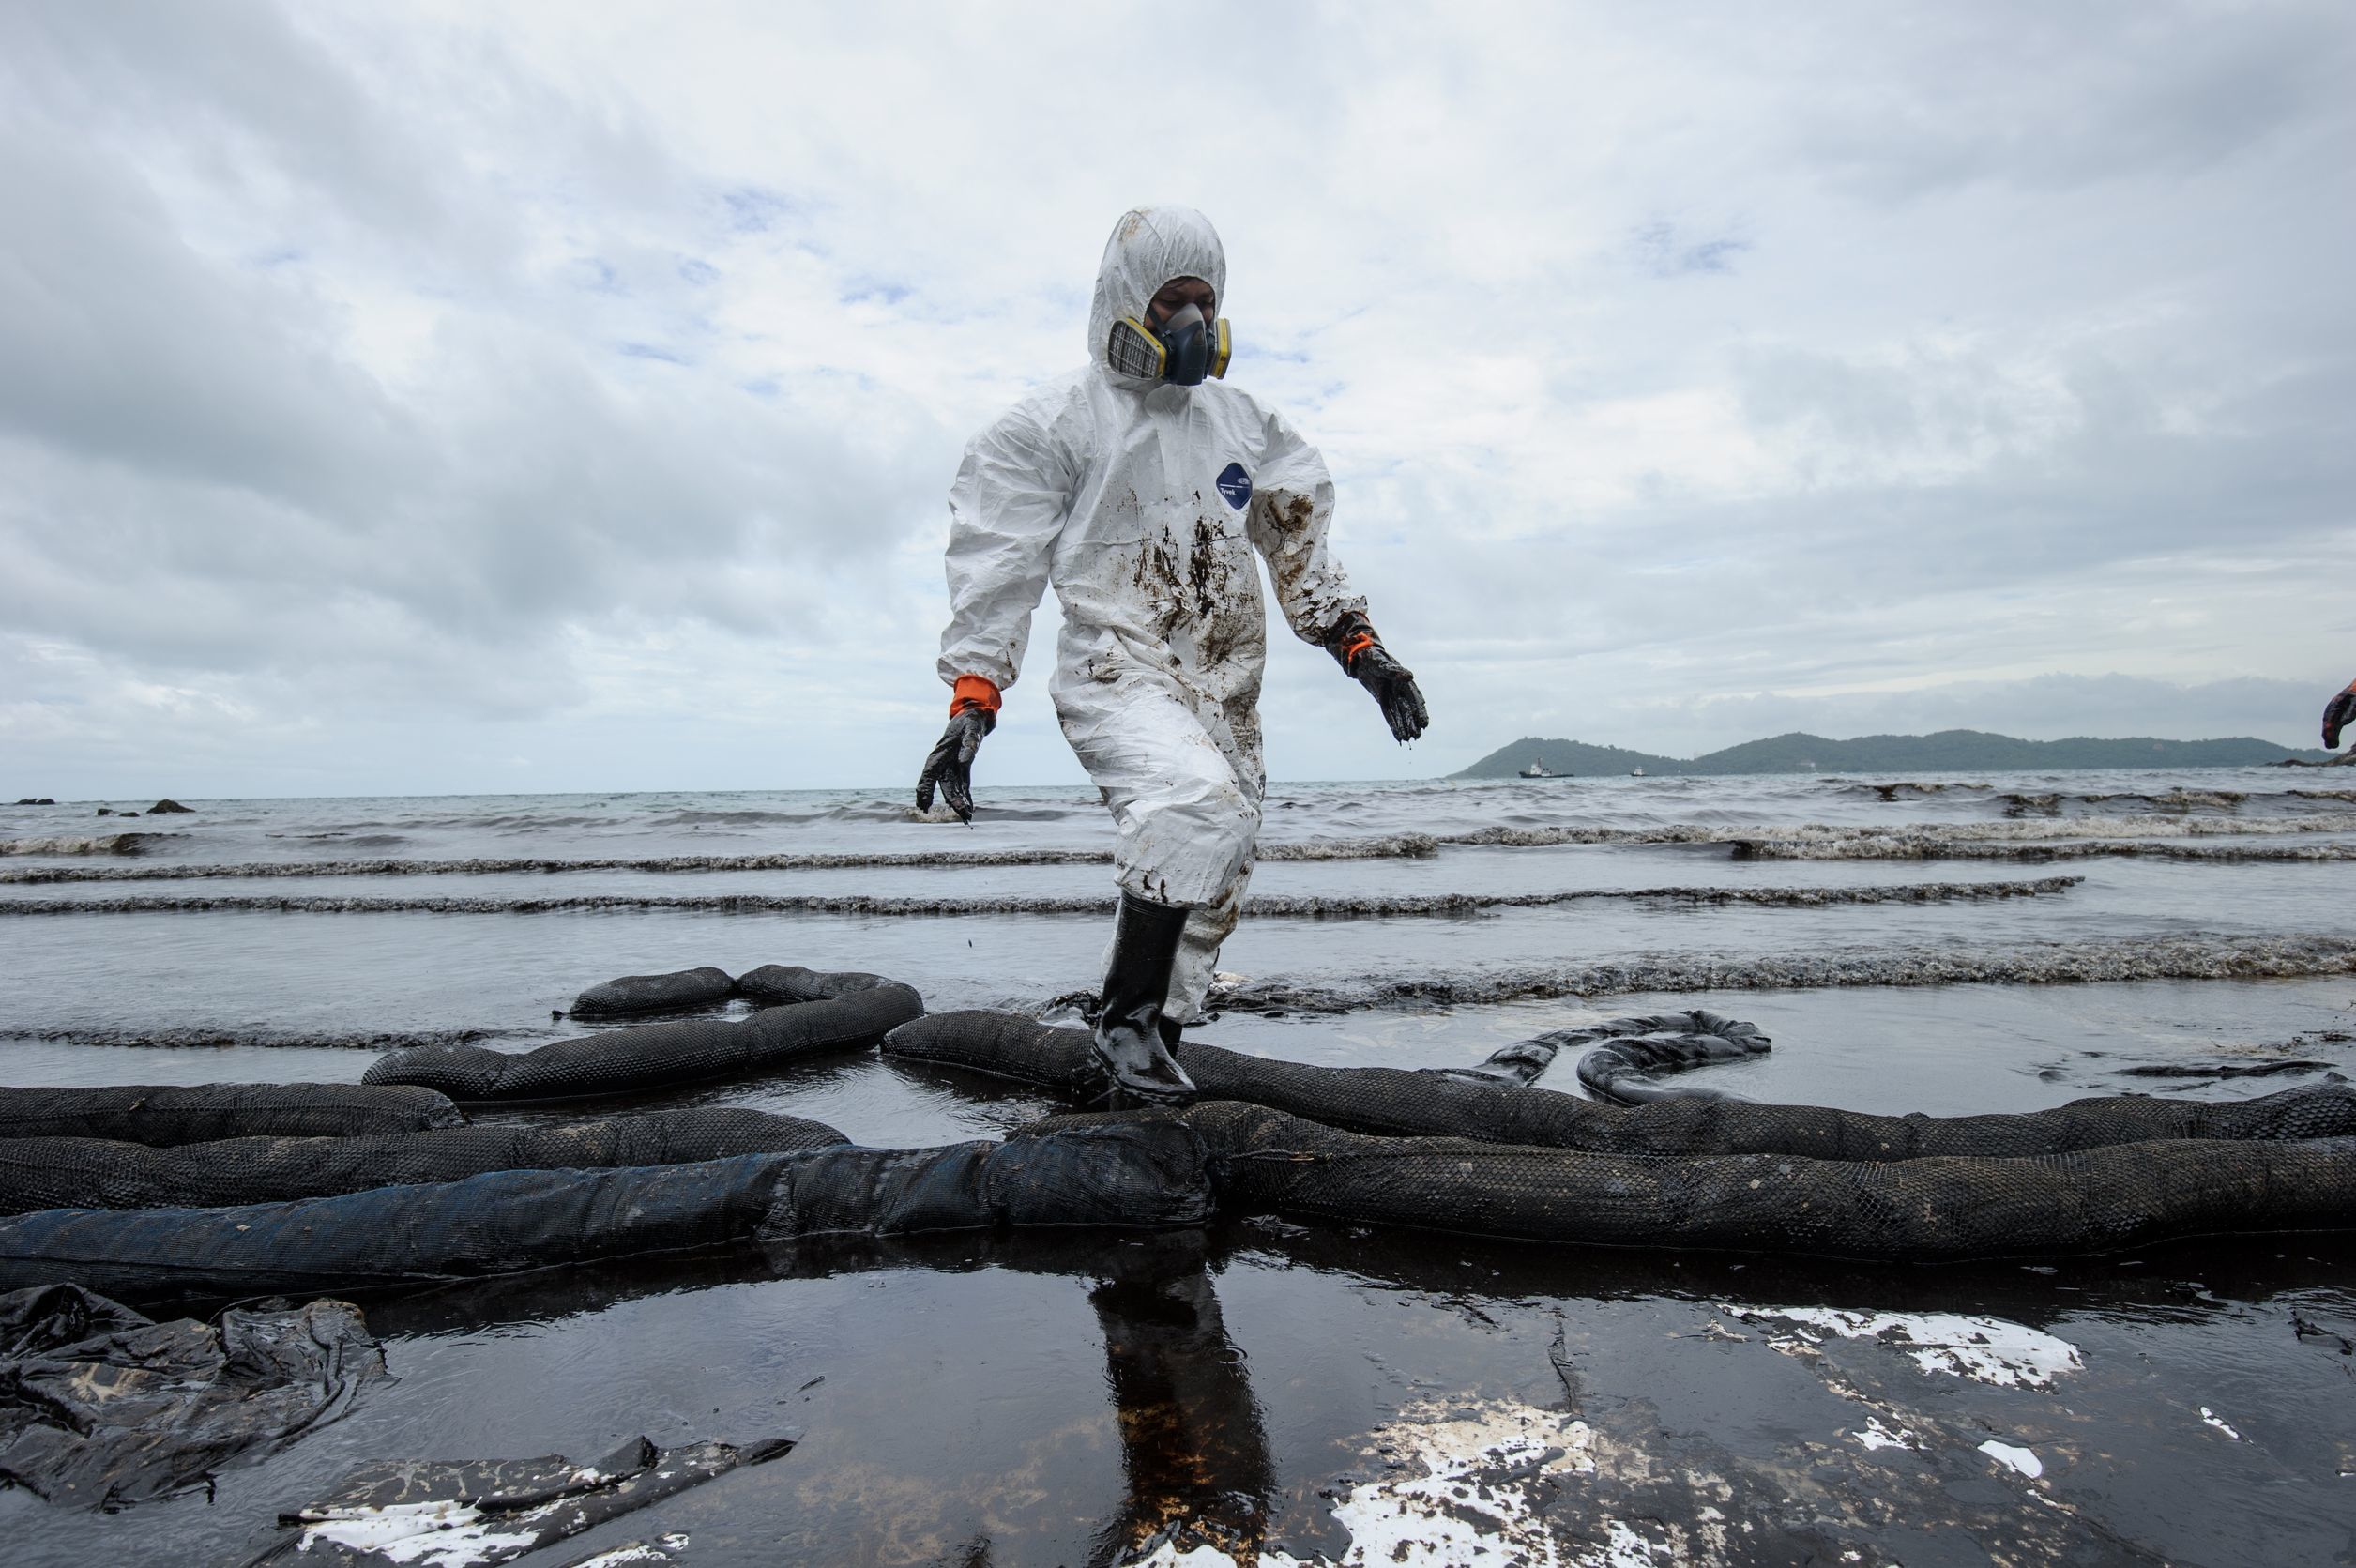 What Are The Effects of Oil Spill